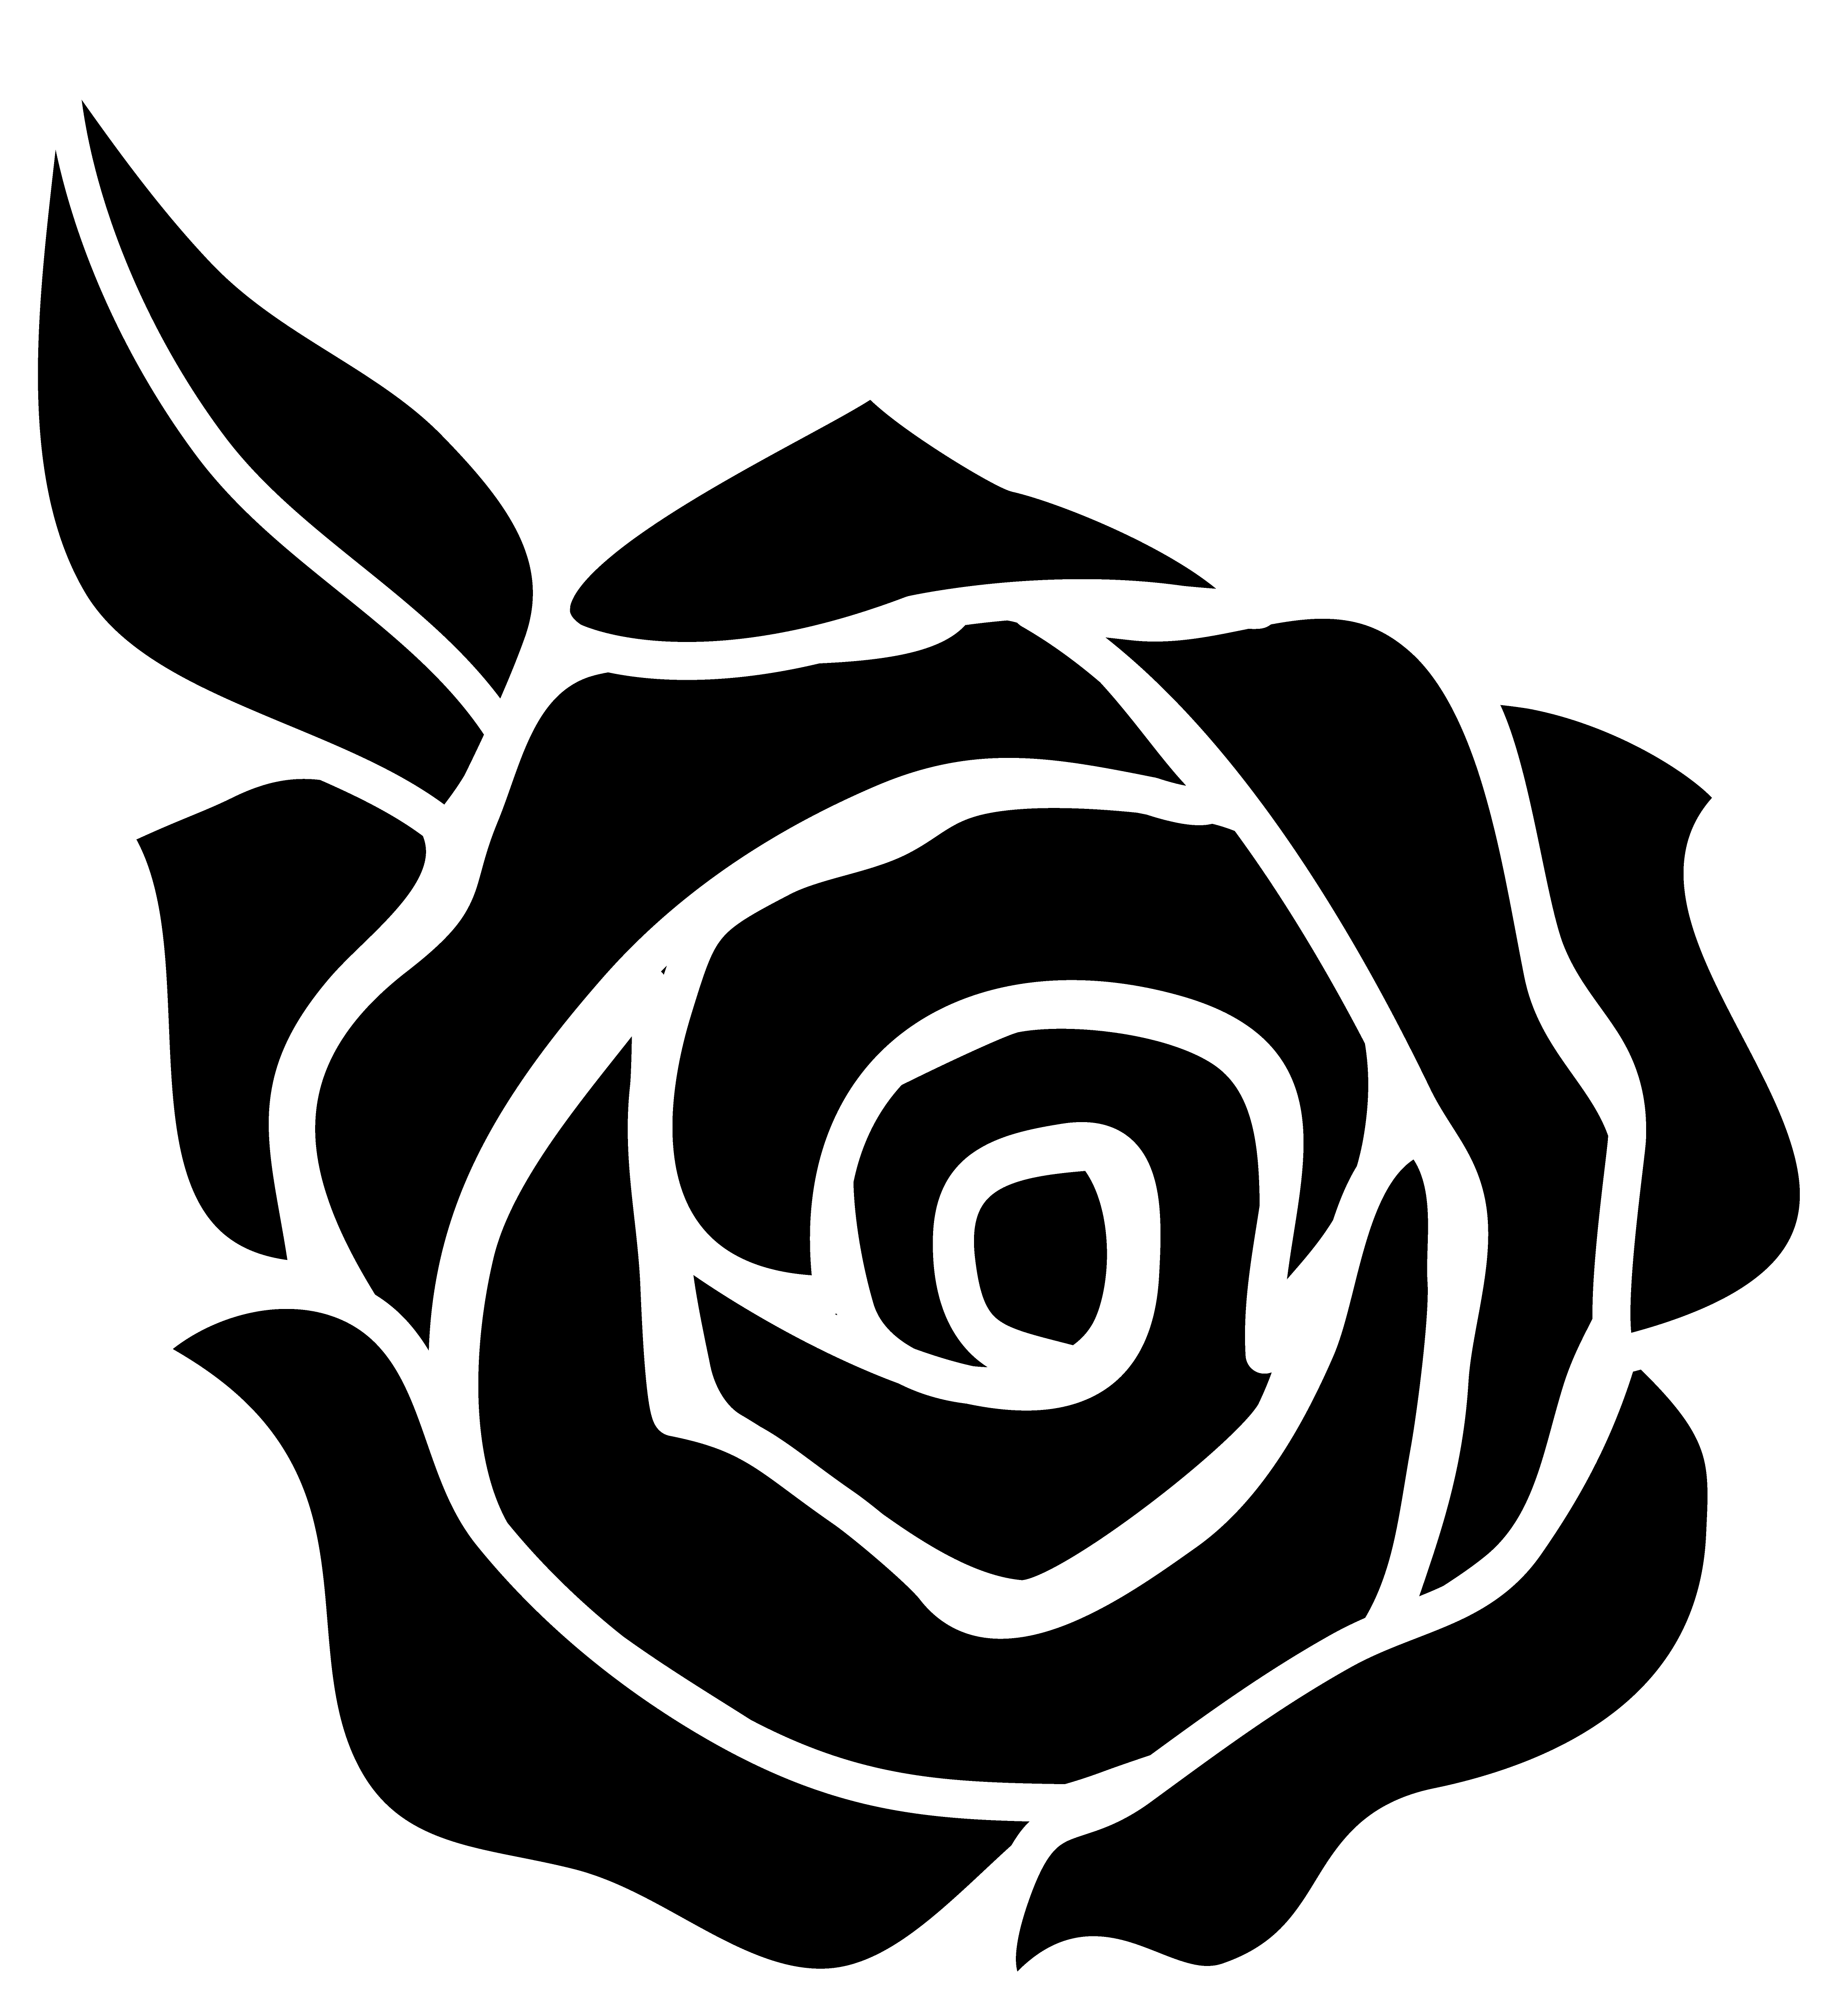 Rose black and white black and white images of roses clipart